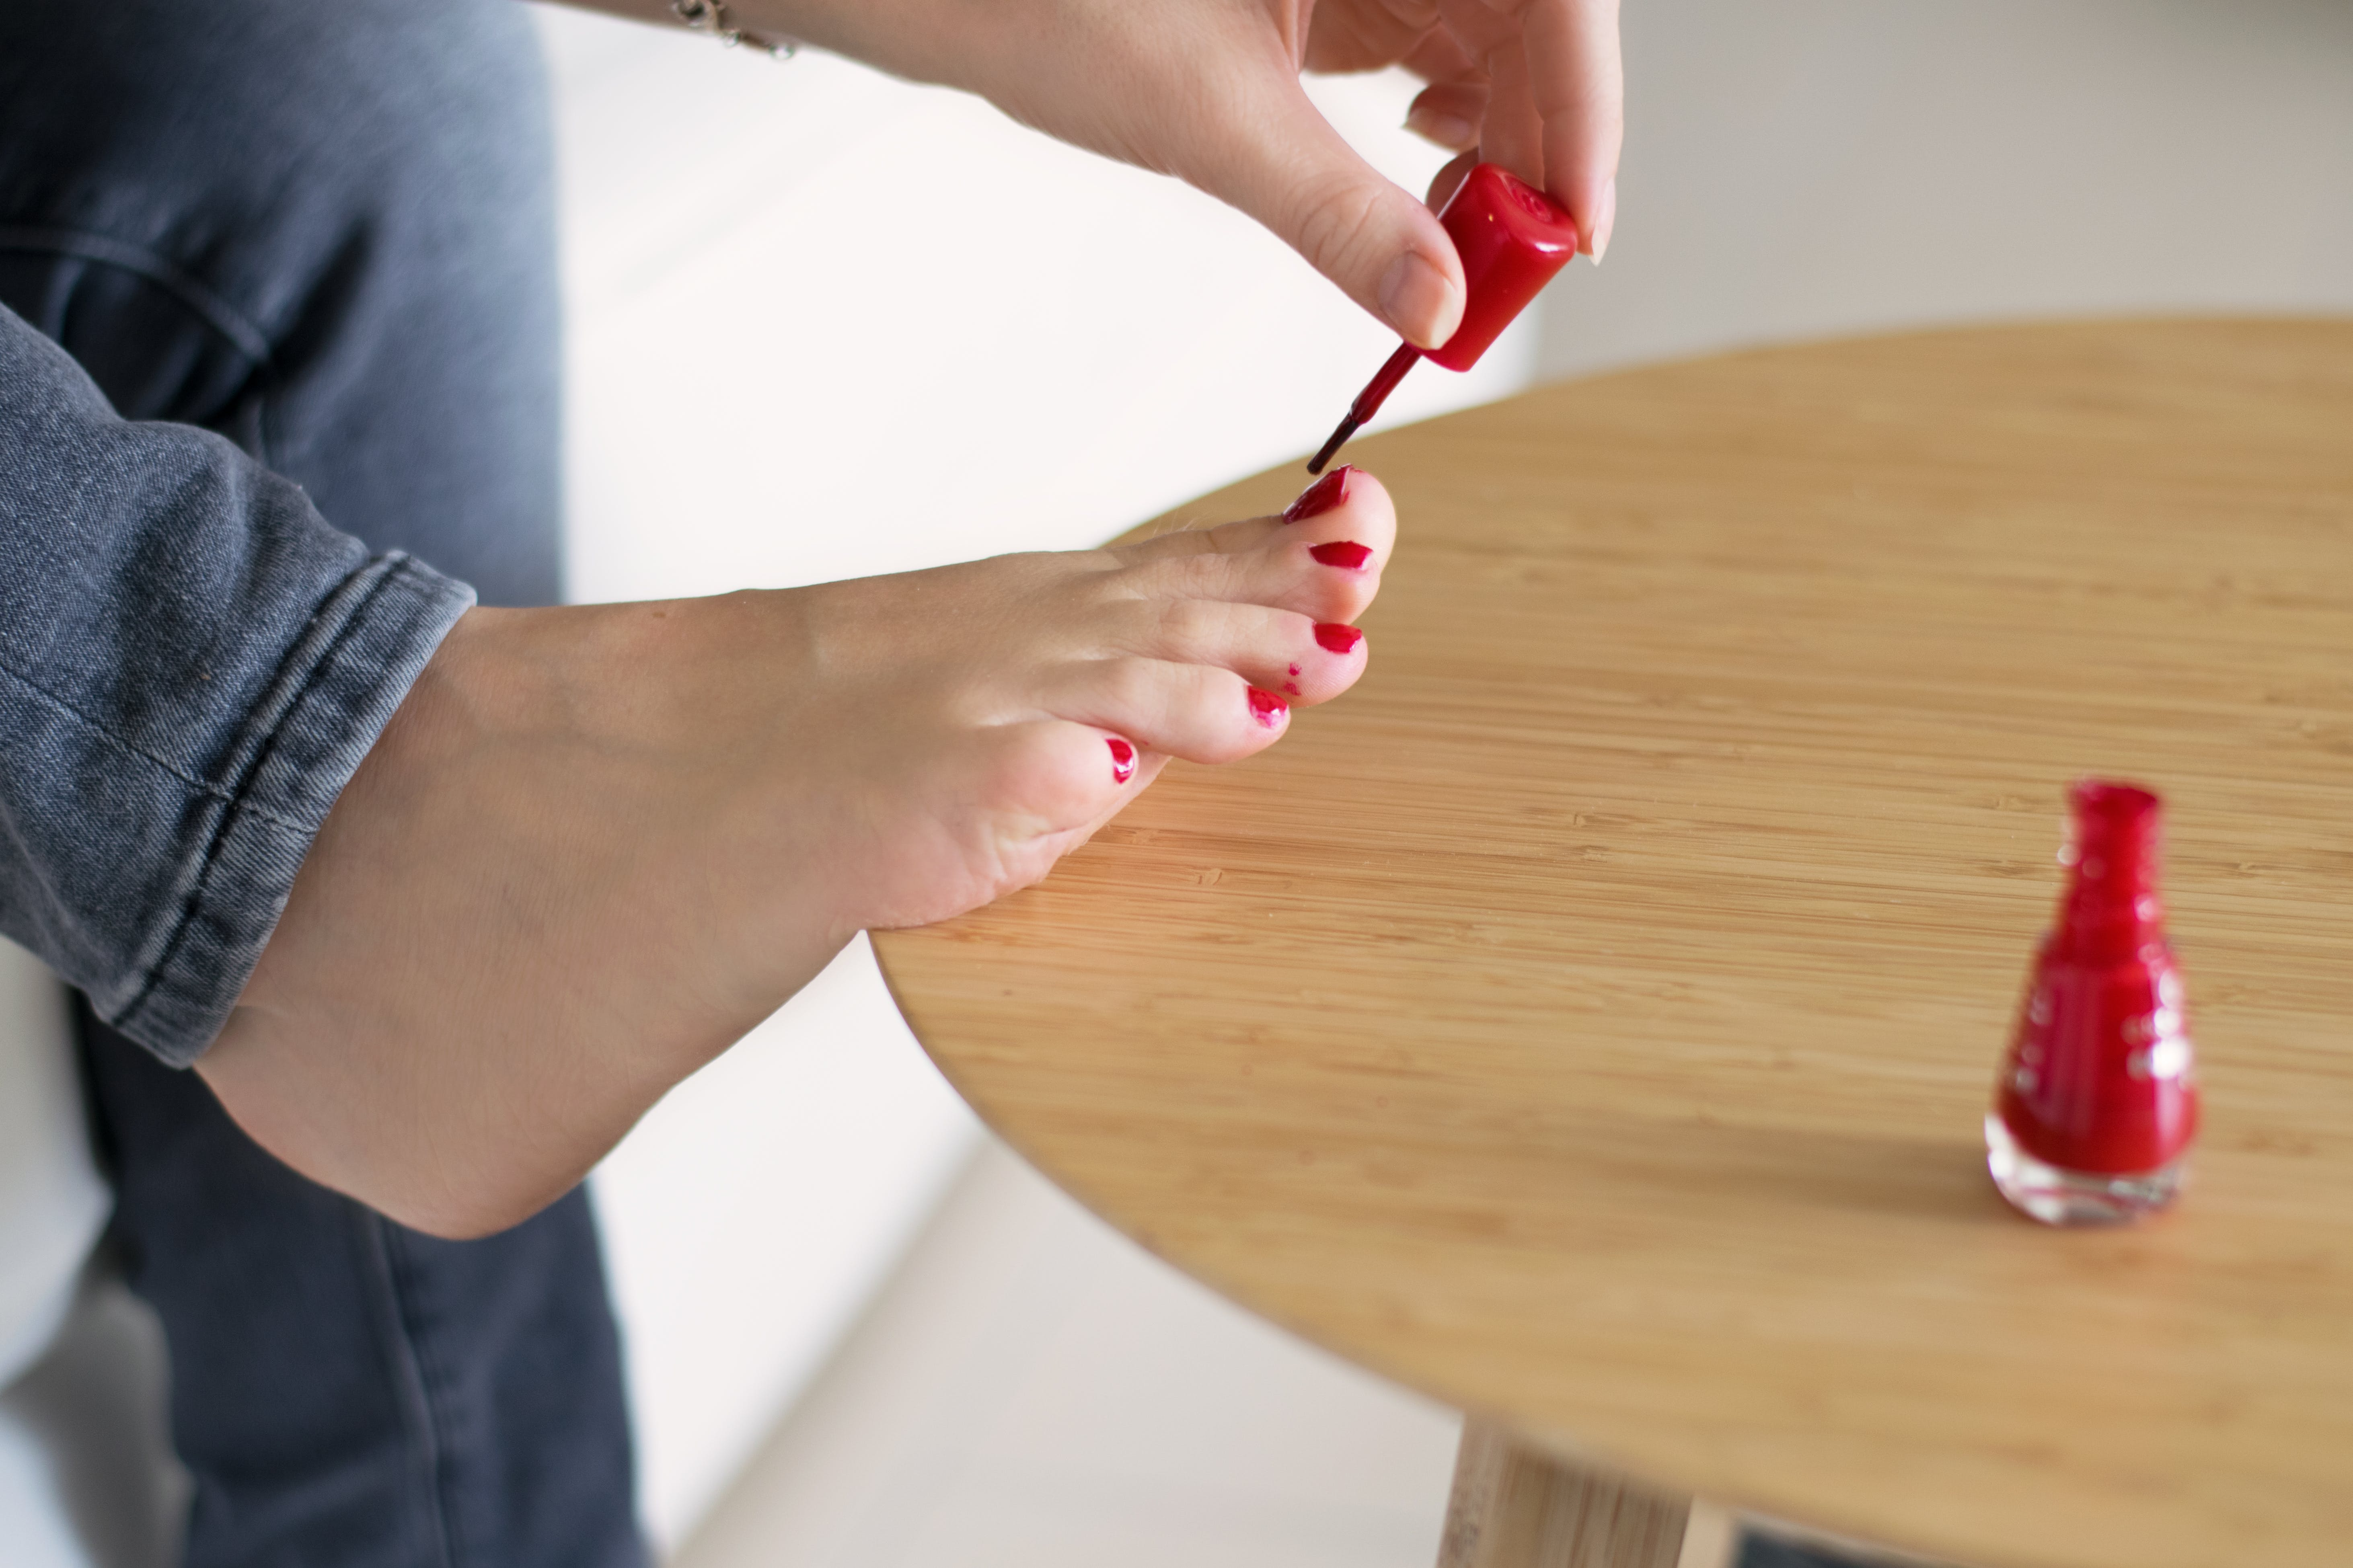 Person Polishing Its Foot Nails Using Red Polisher